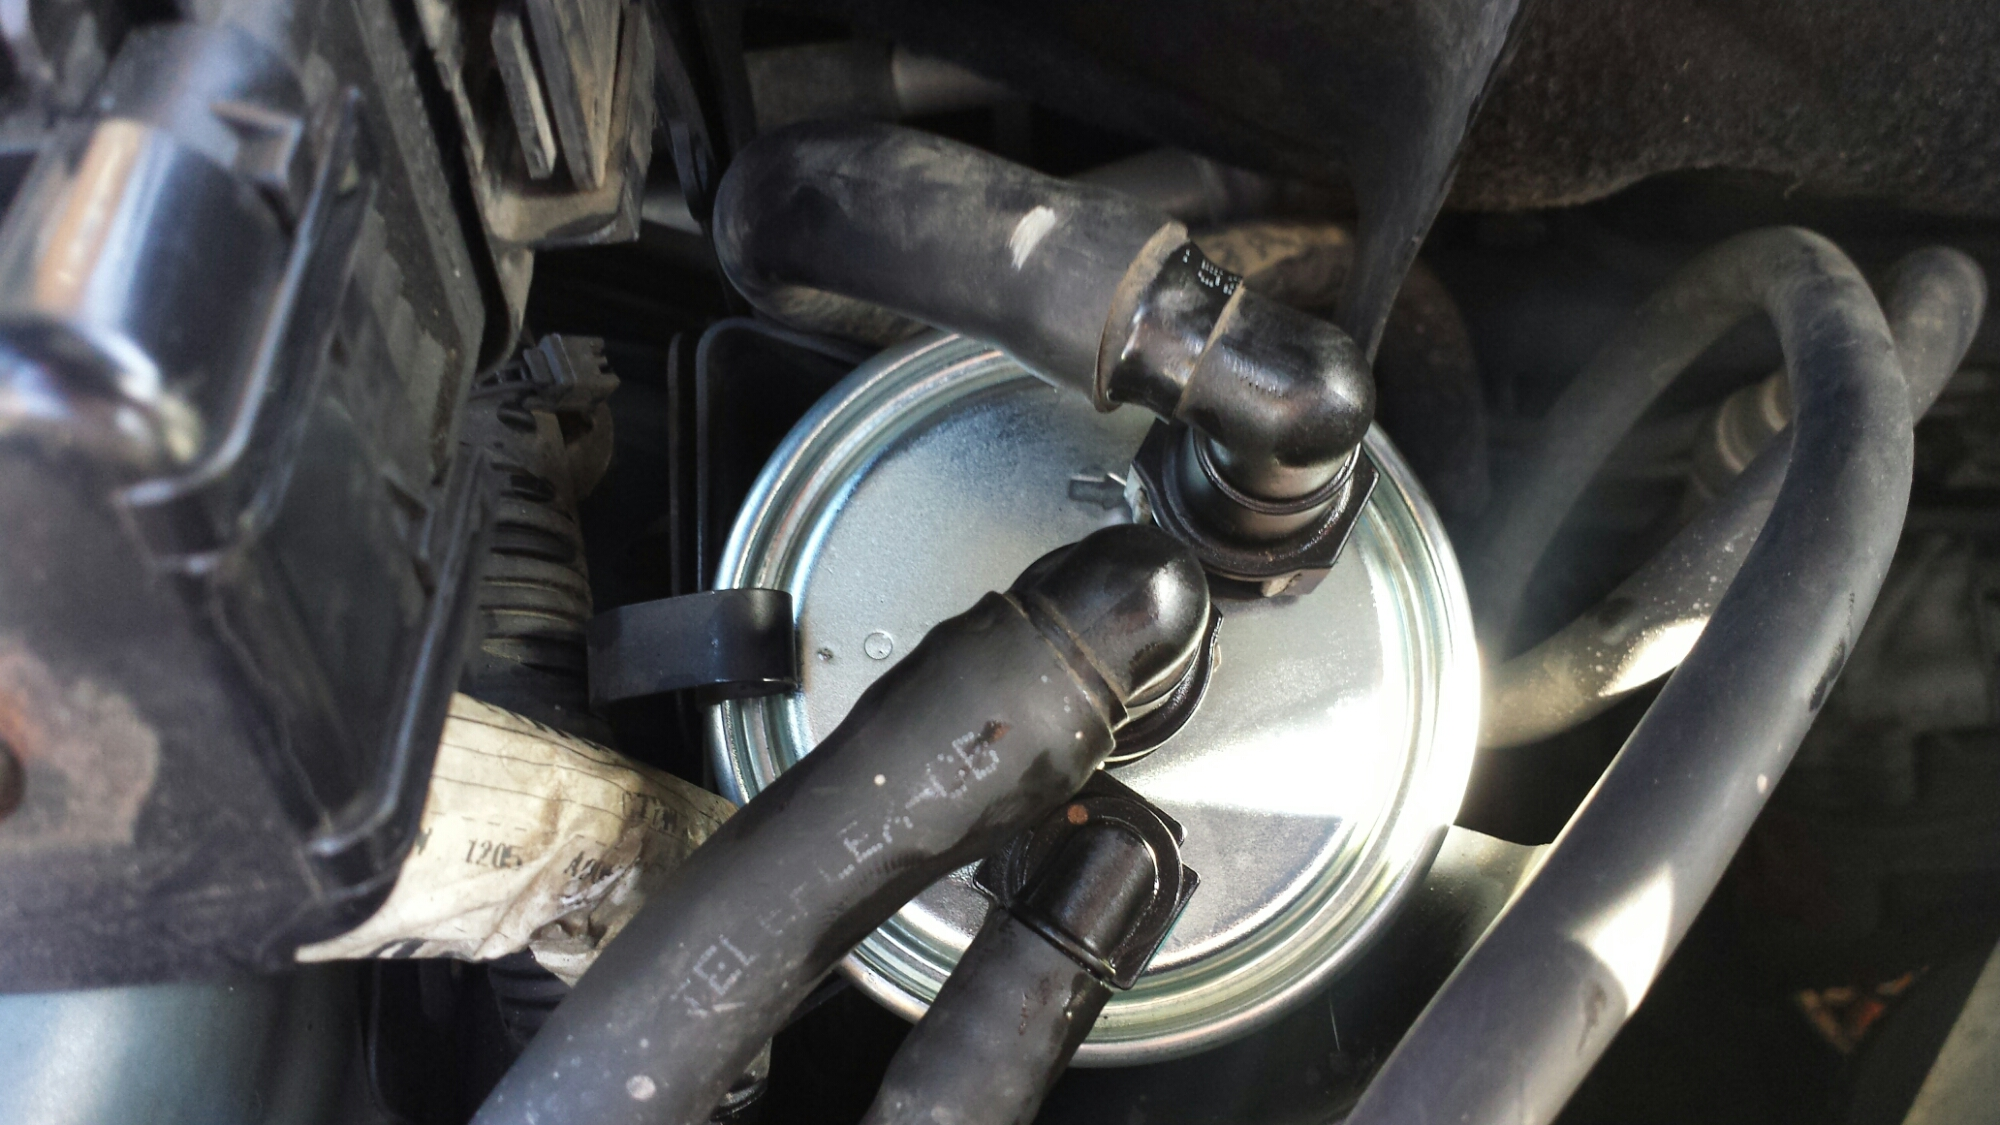 Jaguar X Type Fuel Filter Changed Now Engine Wont Start Solved Vehicle New Image